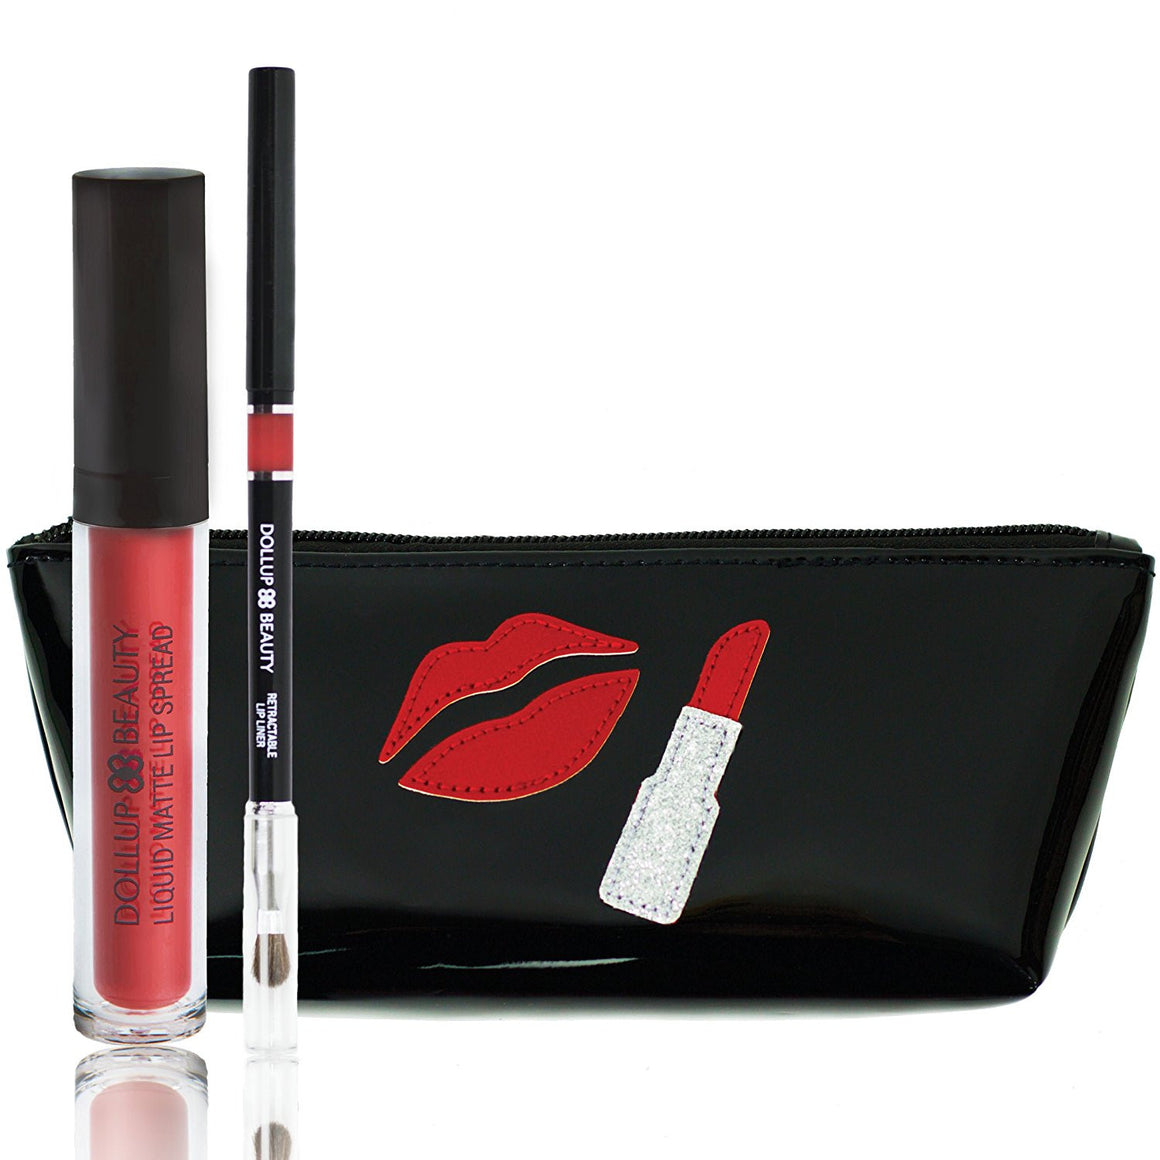 Words to Lip By Lippie Kit - Lips Laugh Love